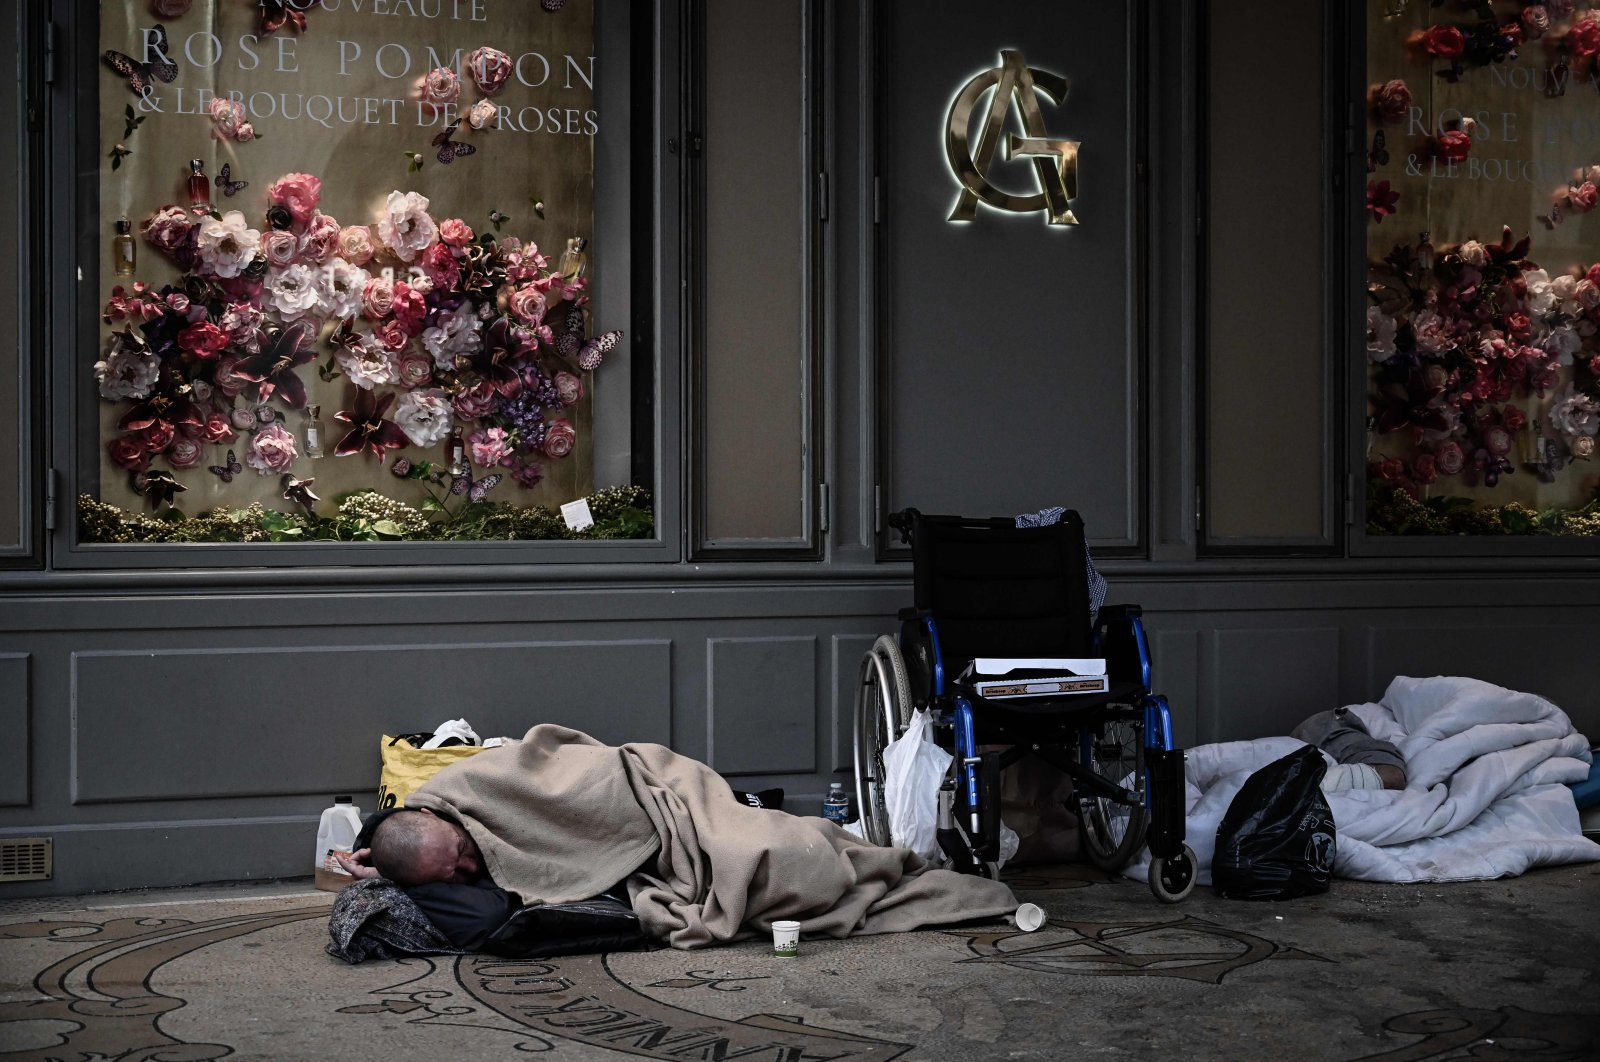 A homeless person sleeps in front of closed shops in Paris on April 17, 2020, on the 32nd day of a strict lockdown in France aimed at curbing the spread of the COVID-19 pandemic caused by the novel coronavirus. (AFP Photo)